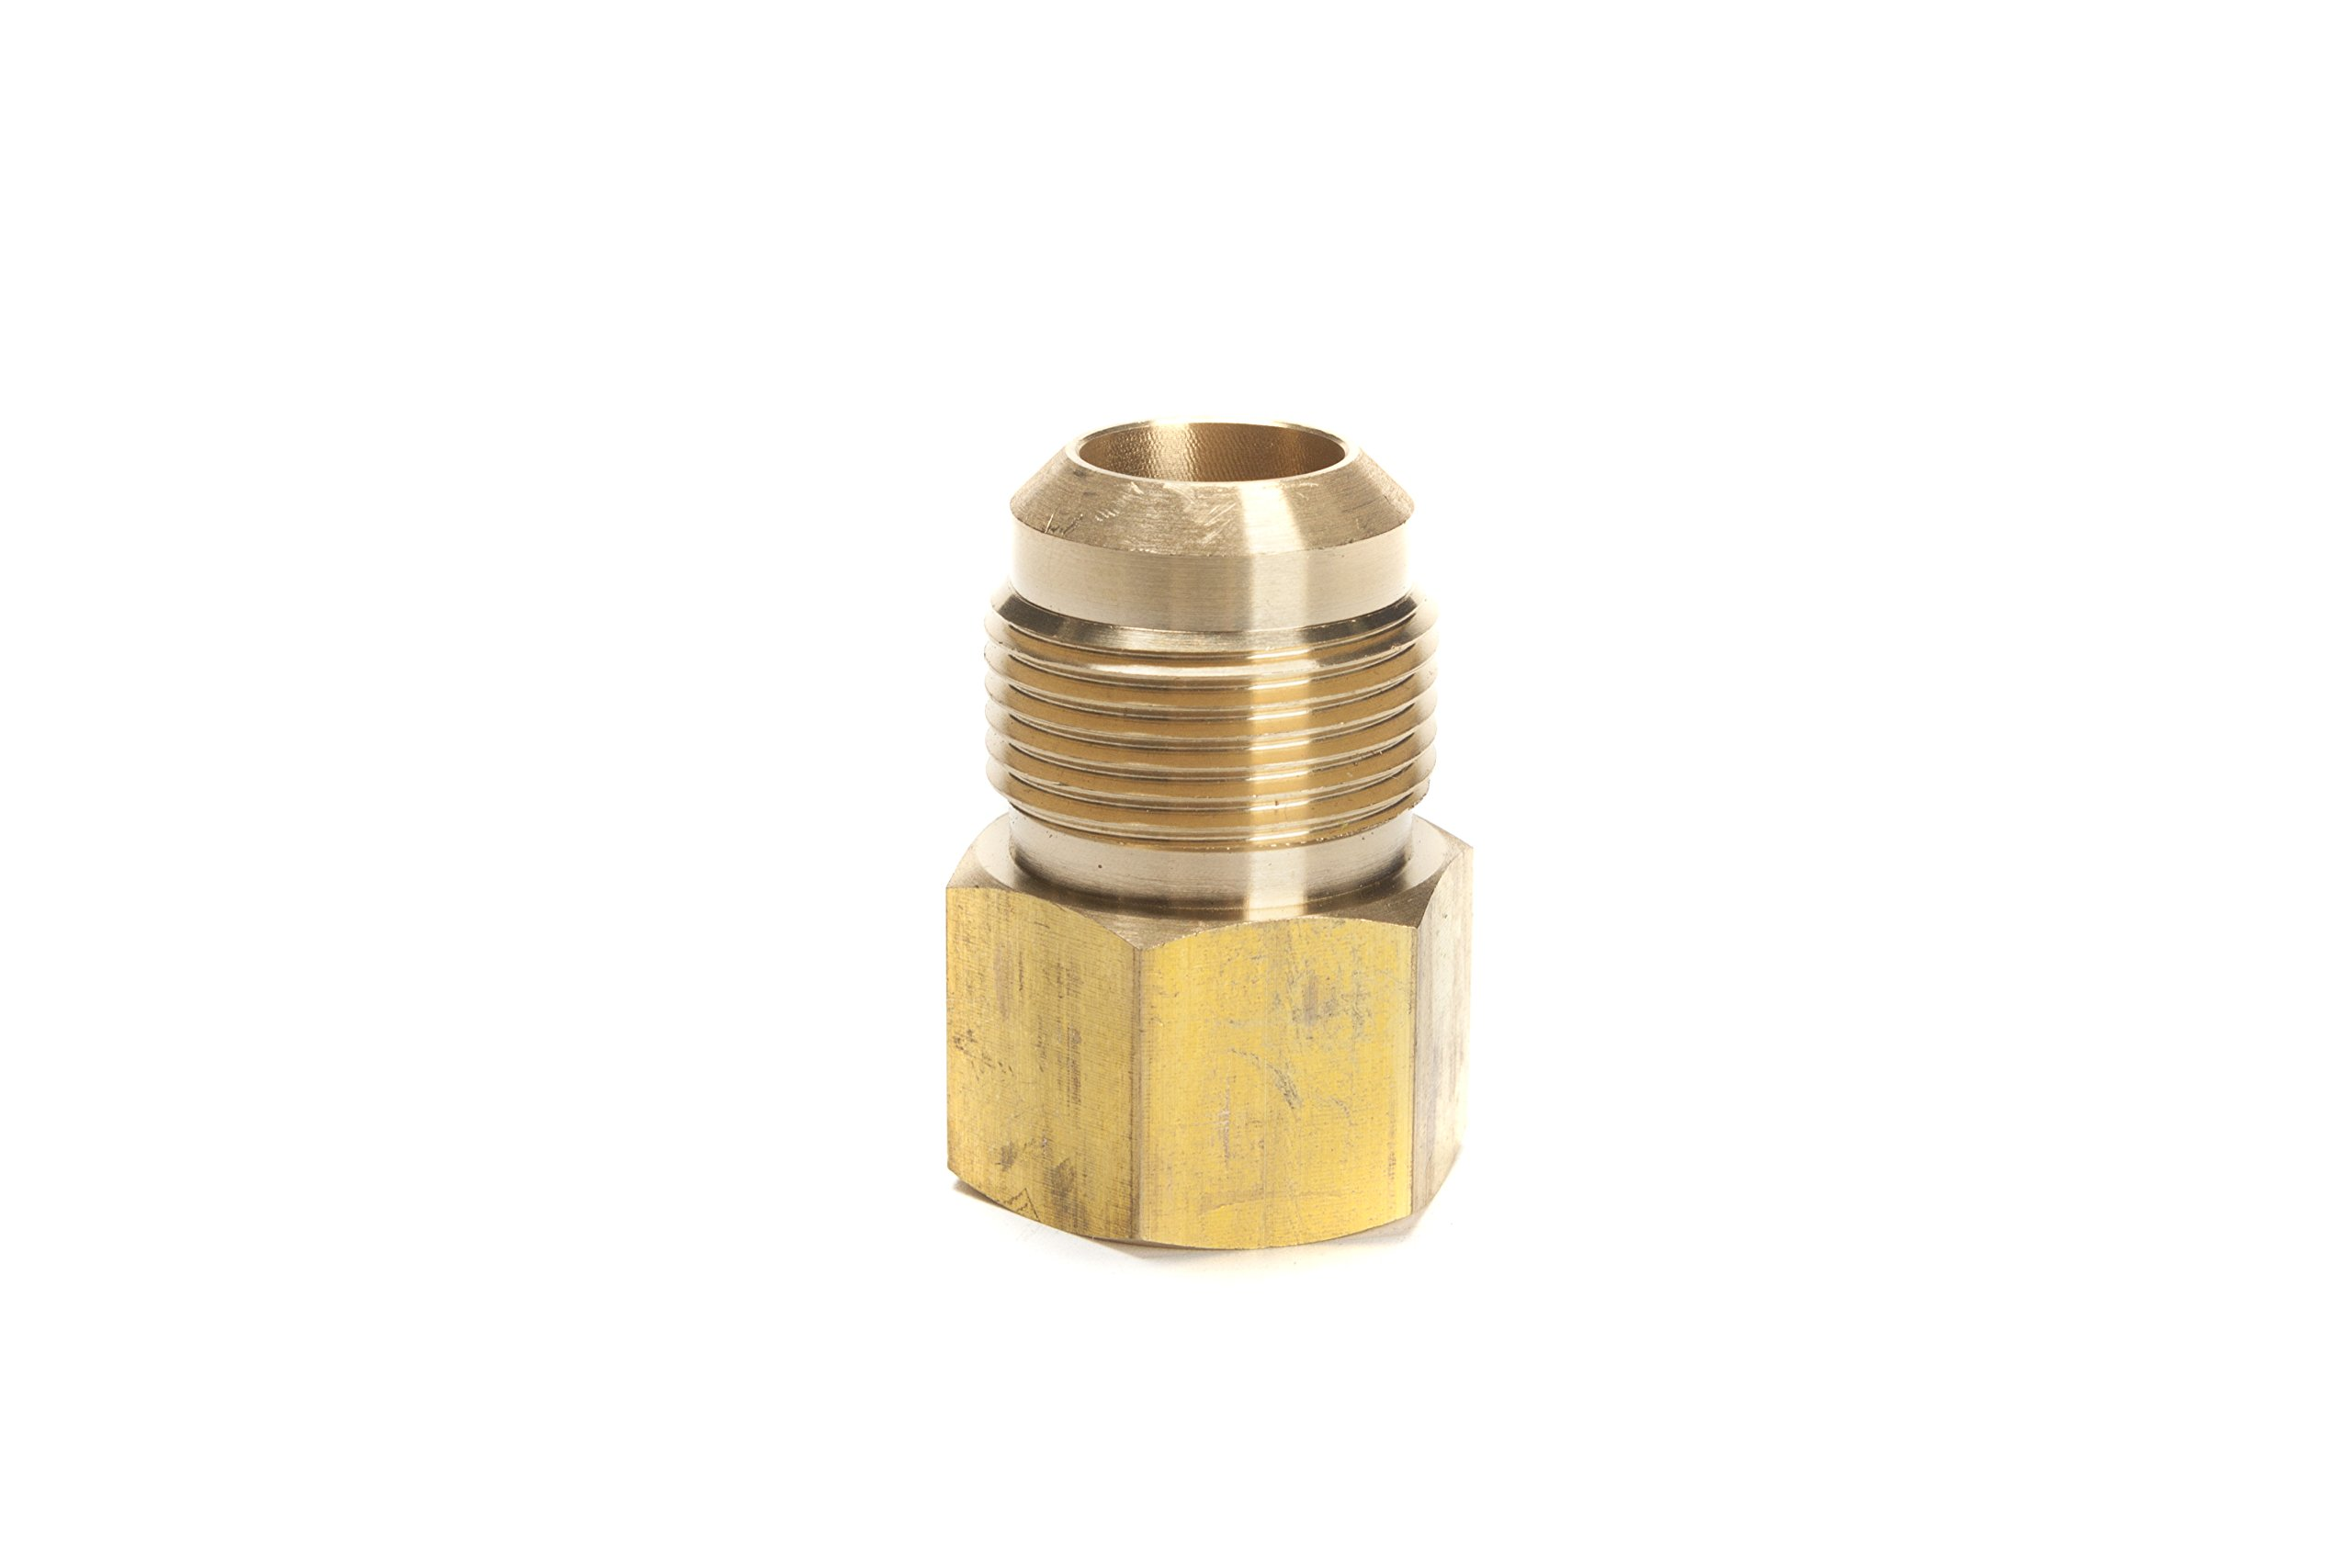 LTWFITTING Brass Flare 3/4'' OD x 3/4'' Female NPT Connector/Adapter Tube Fitting(Pack of 5) by LTWFITTING